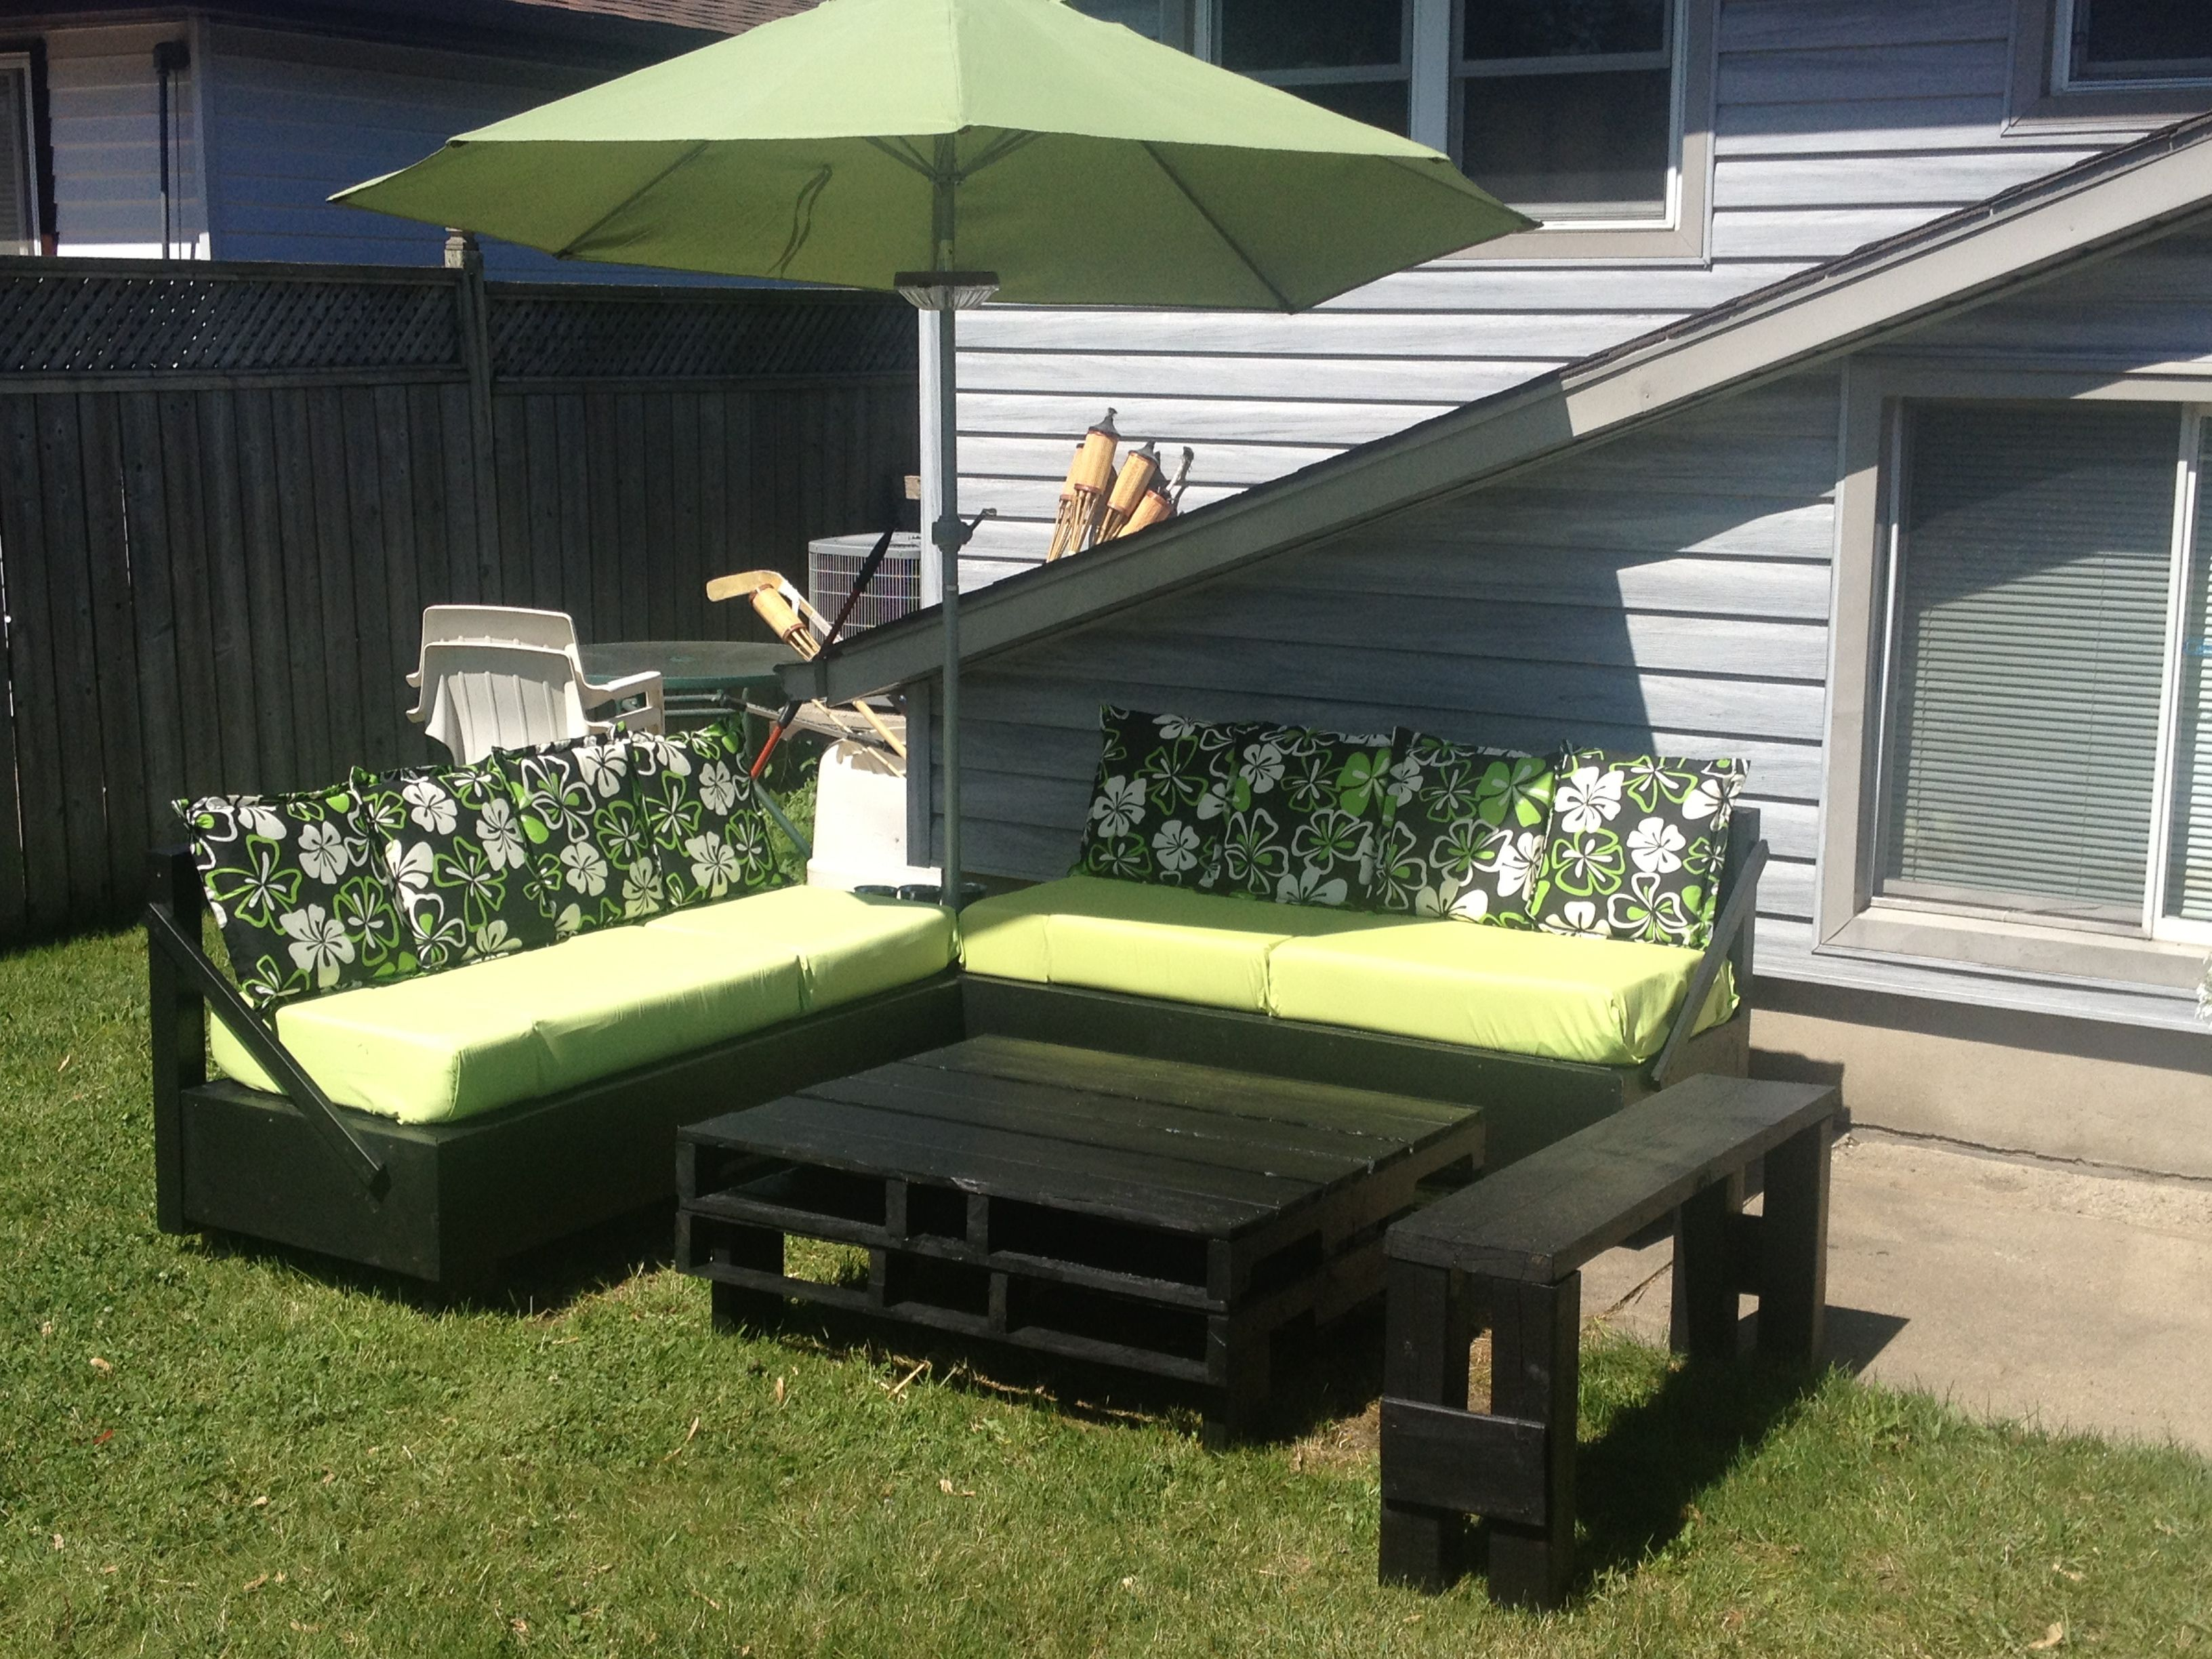 Homemade patio furniture my husband and I made A lot of